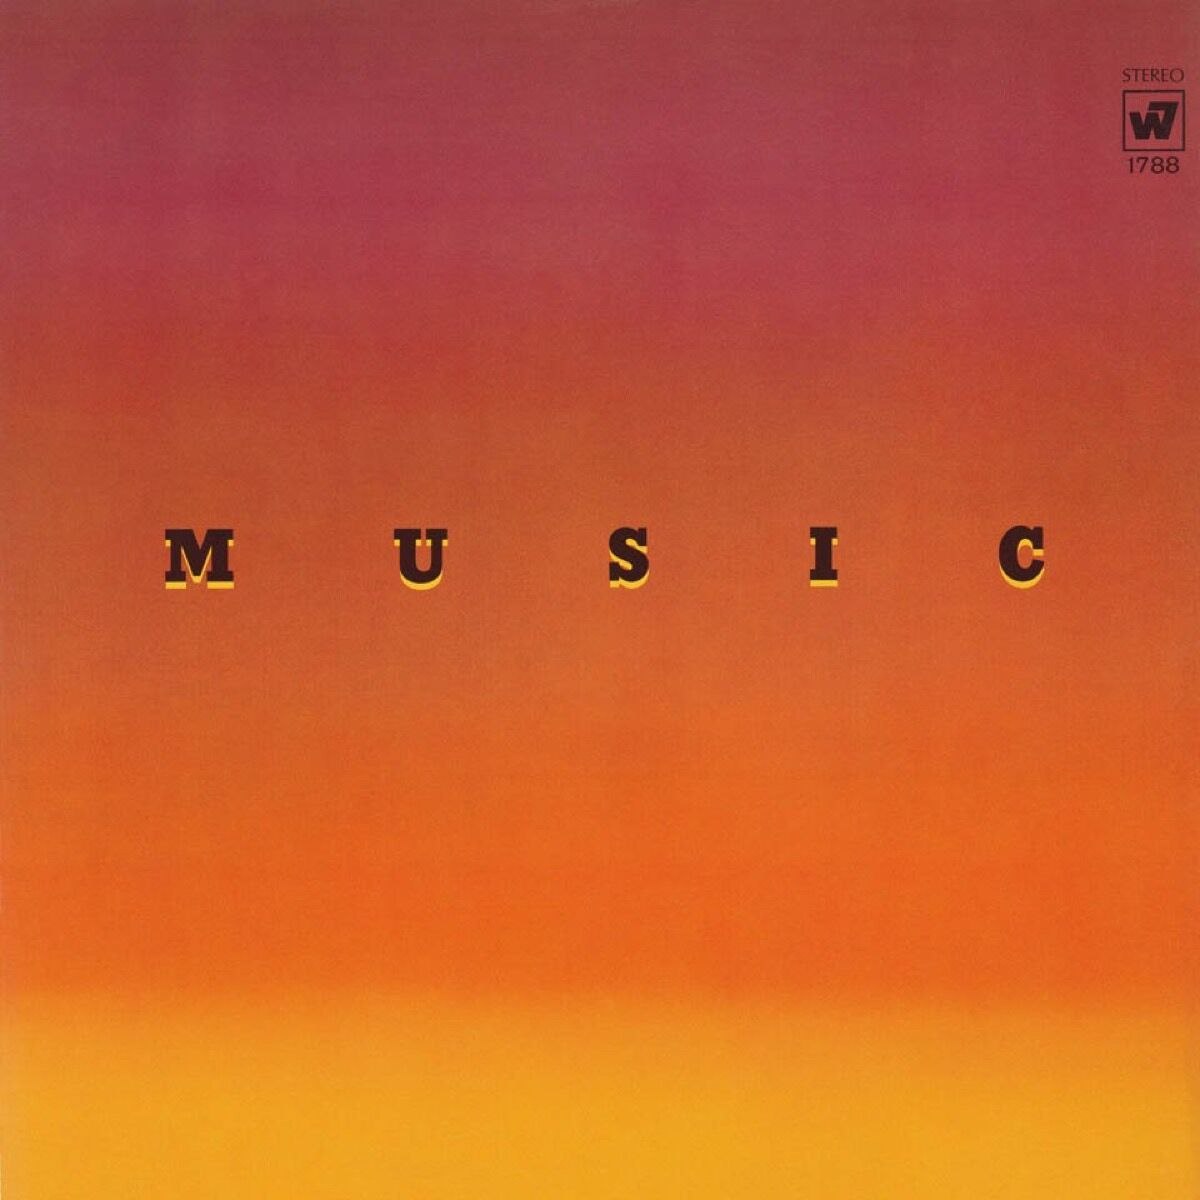 Ed Ruscha's cover for Music by Mason Williams, 1969. Courtesy of TASCHEN.